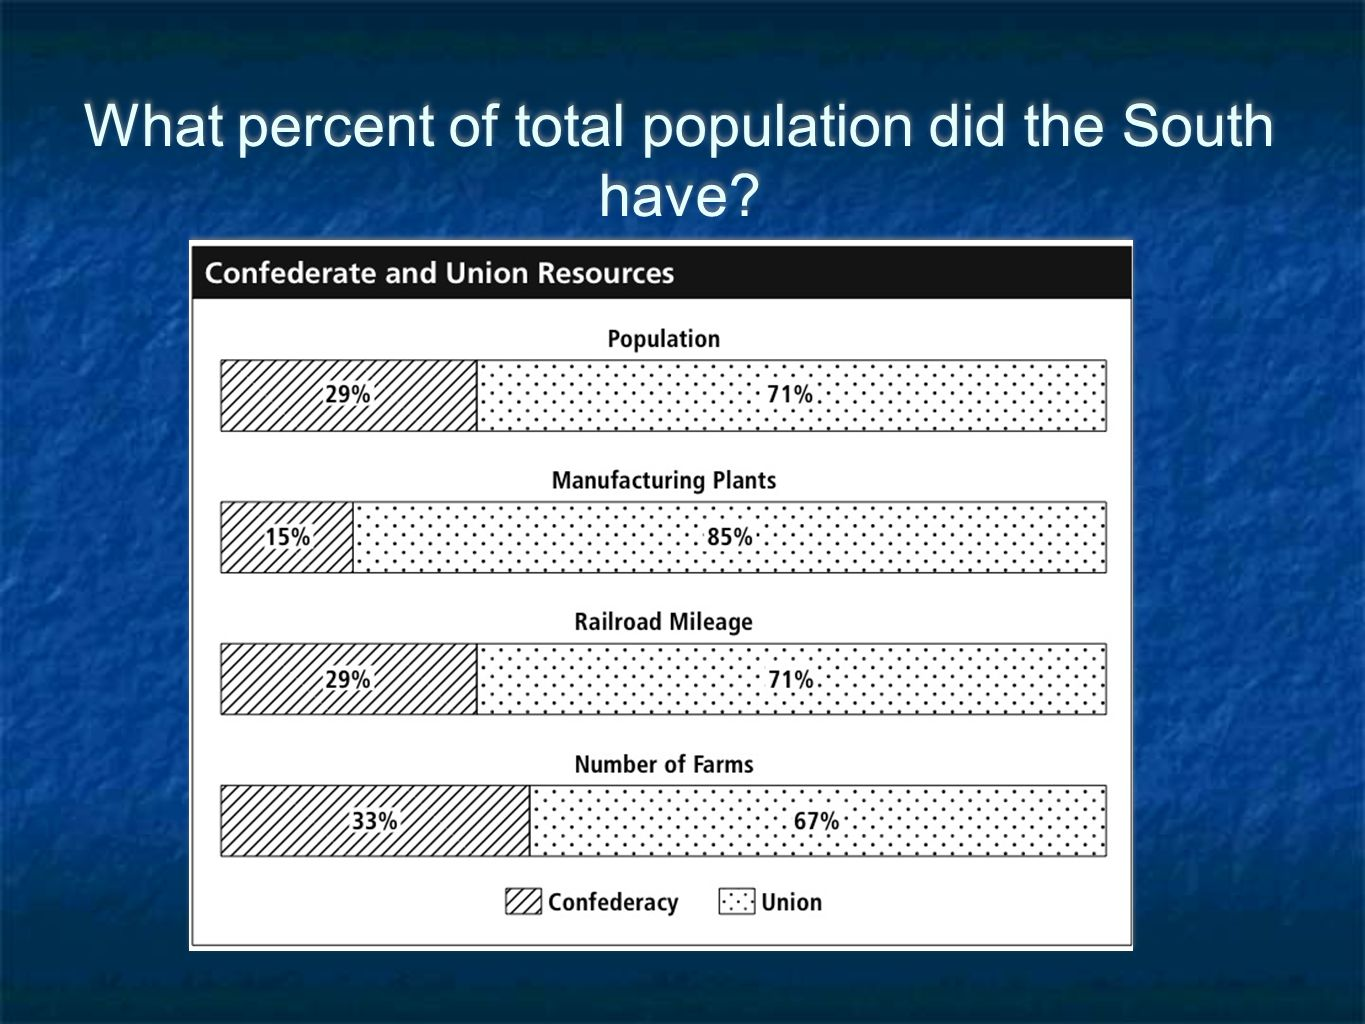 What percent of total population did the South have